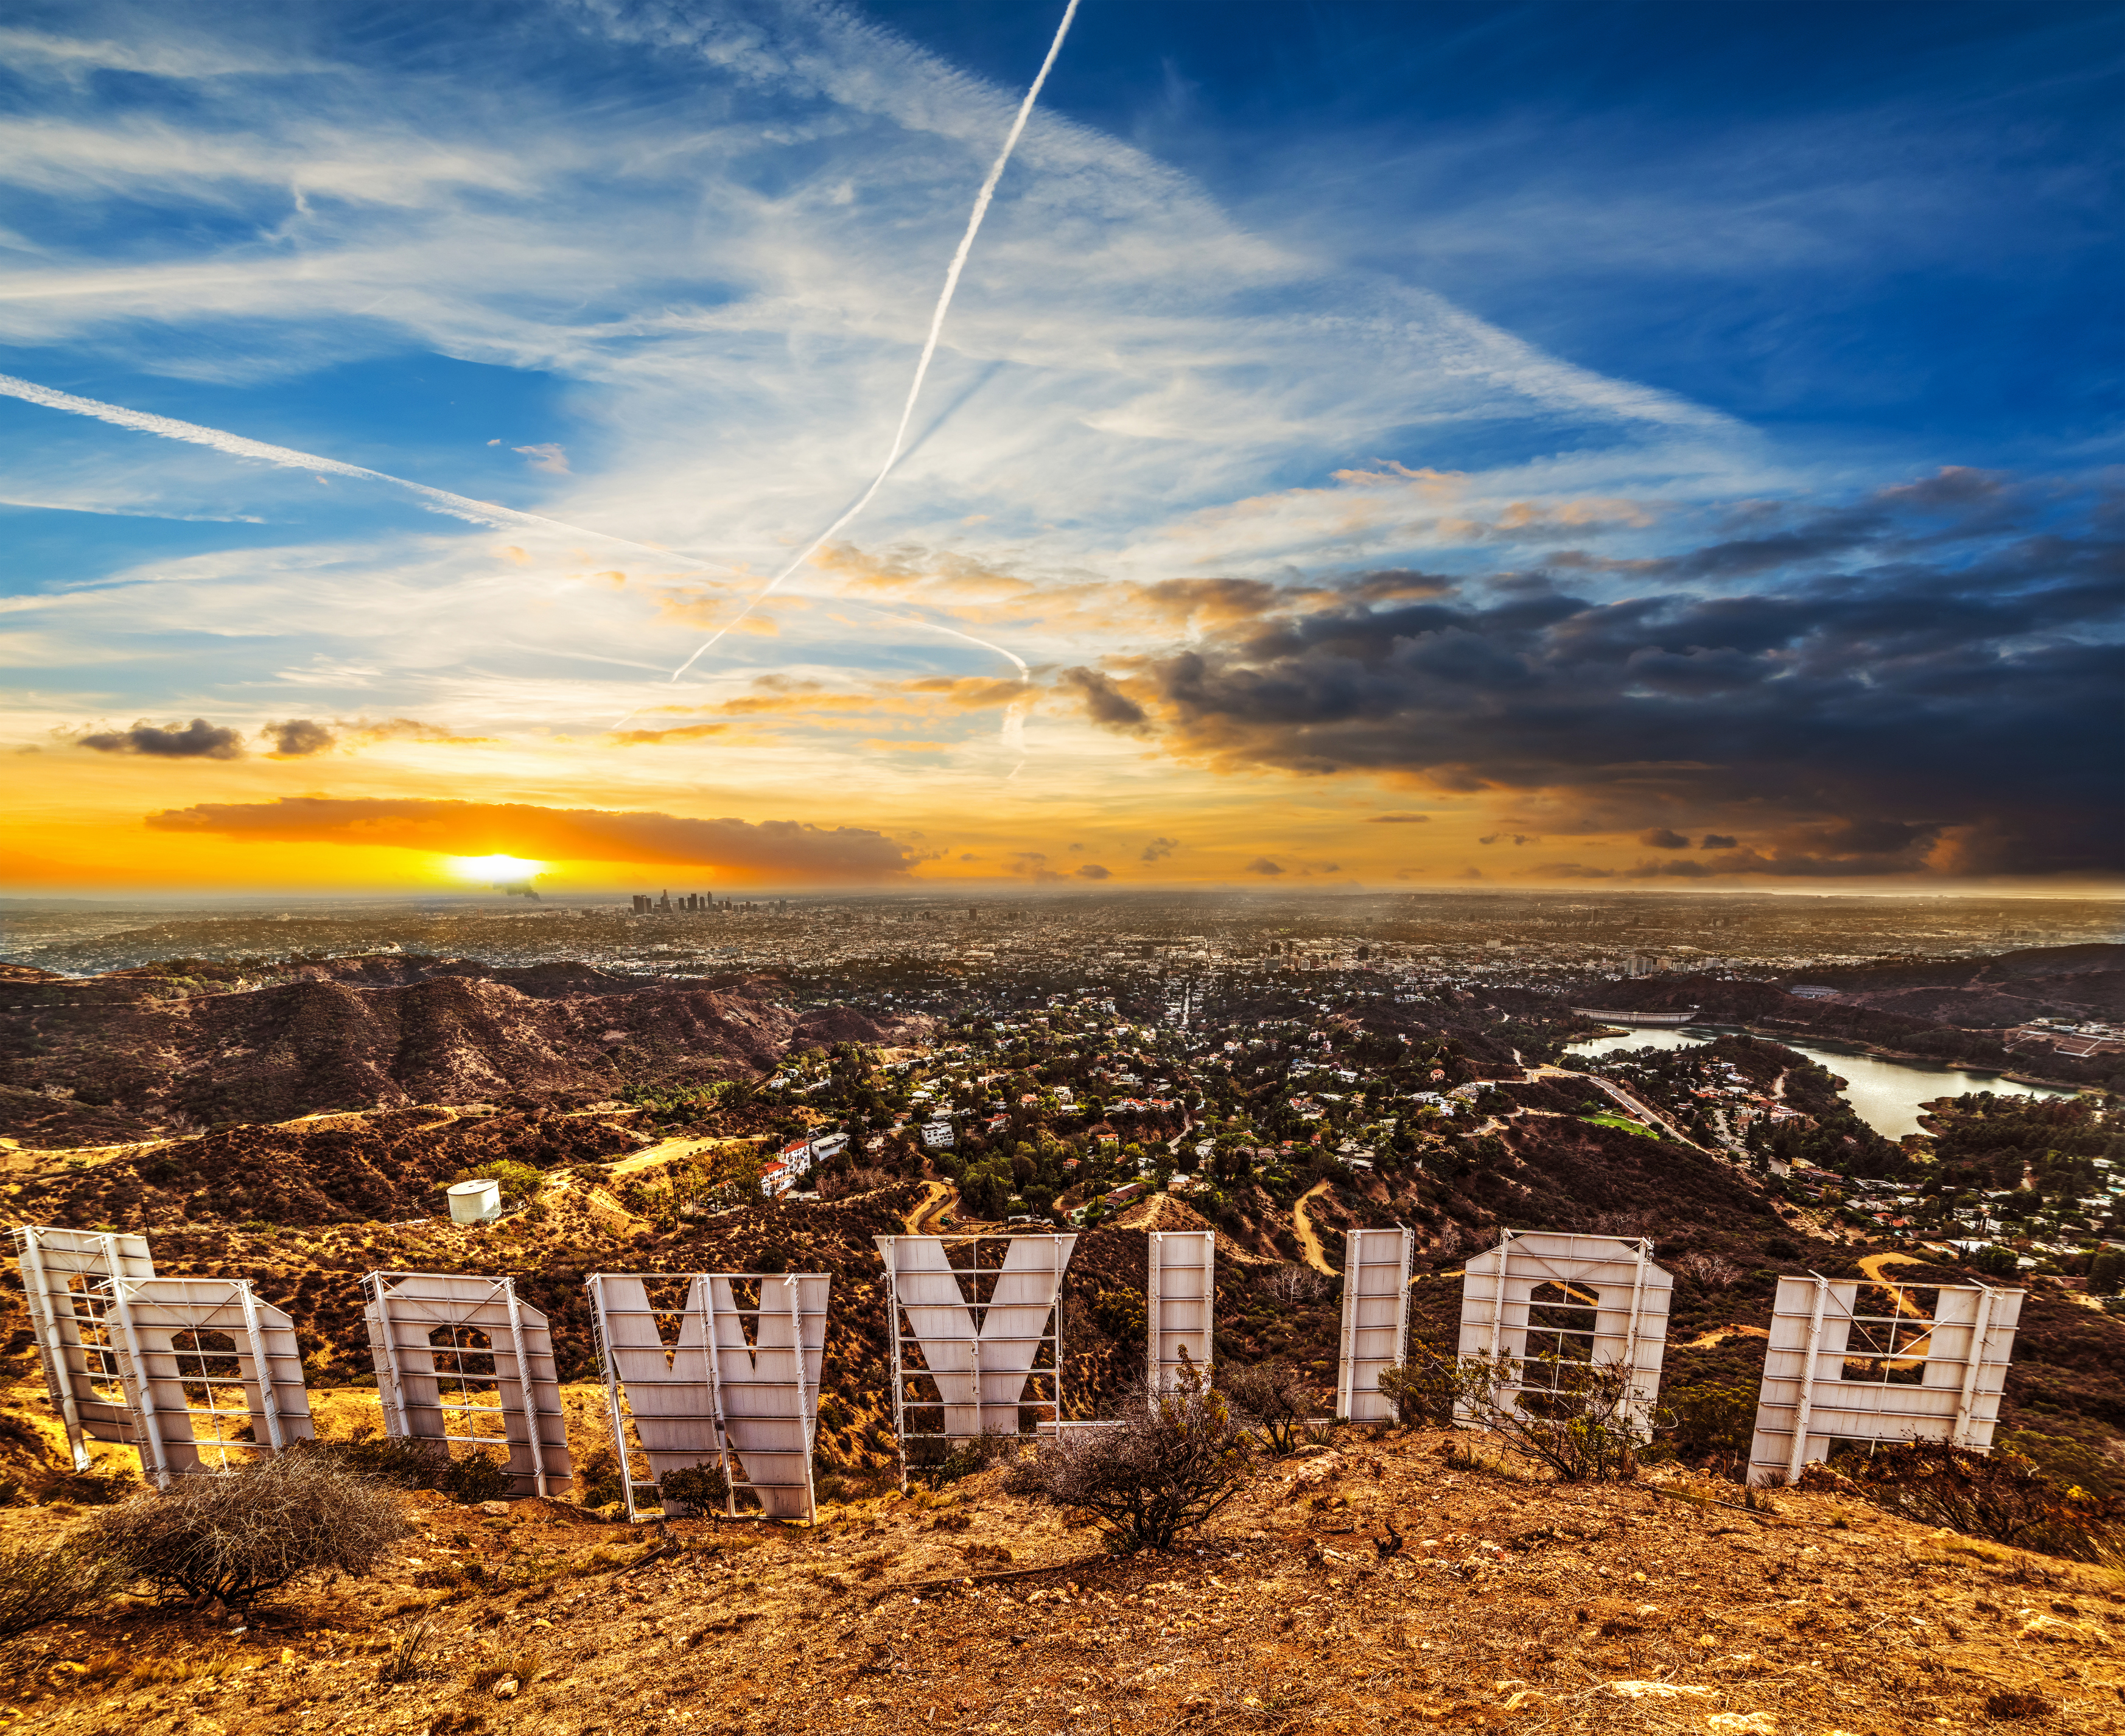 4-Day Hollywood, Disneyland (or San Diego), Universal Studios Tour from San Francisco